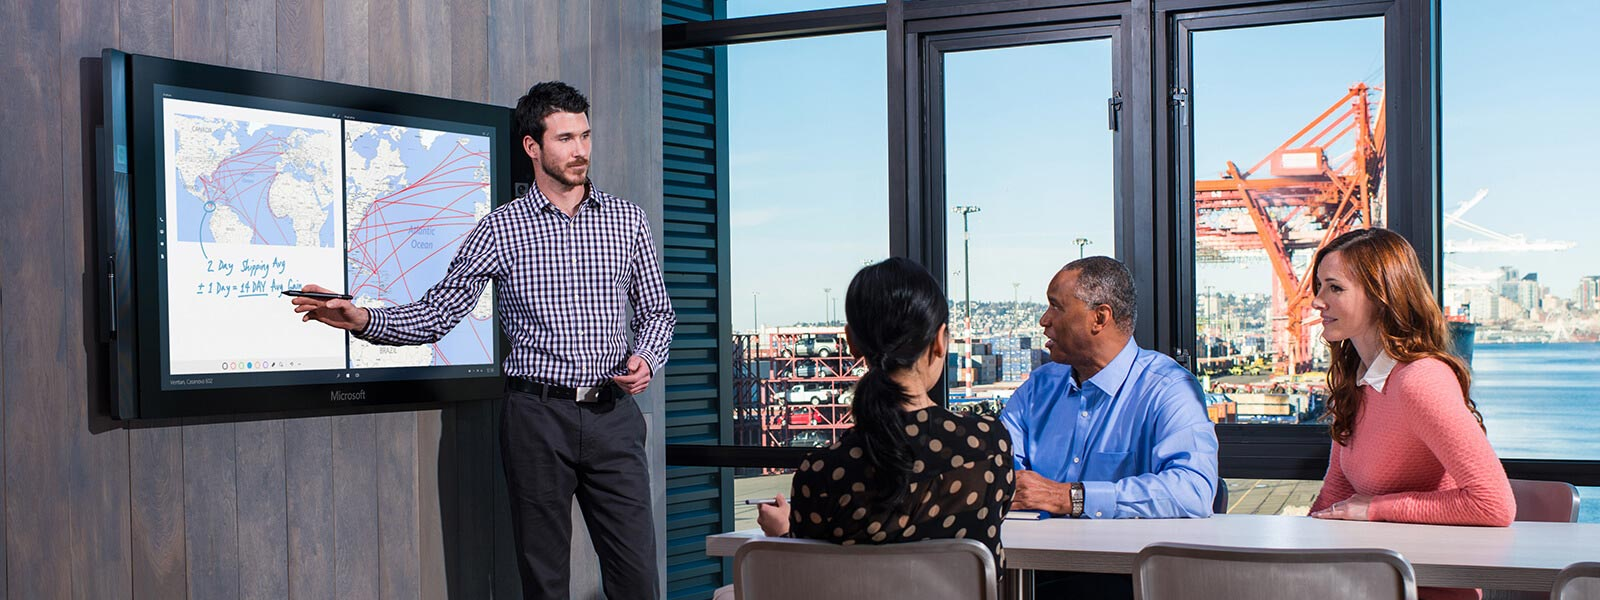 Man uses touchscreen on Surface Hub as he gives presentation in conference room.